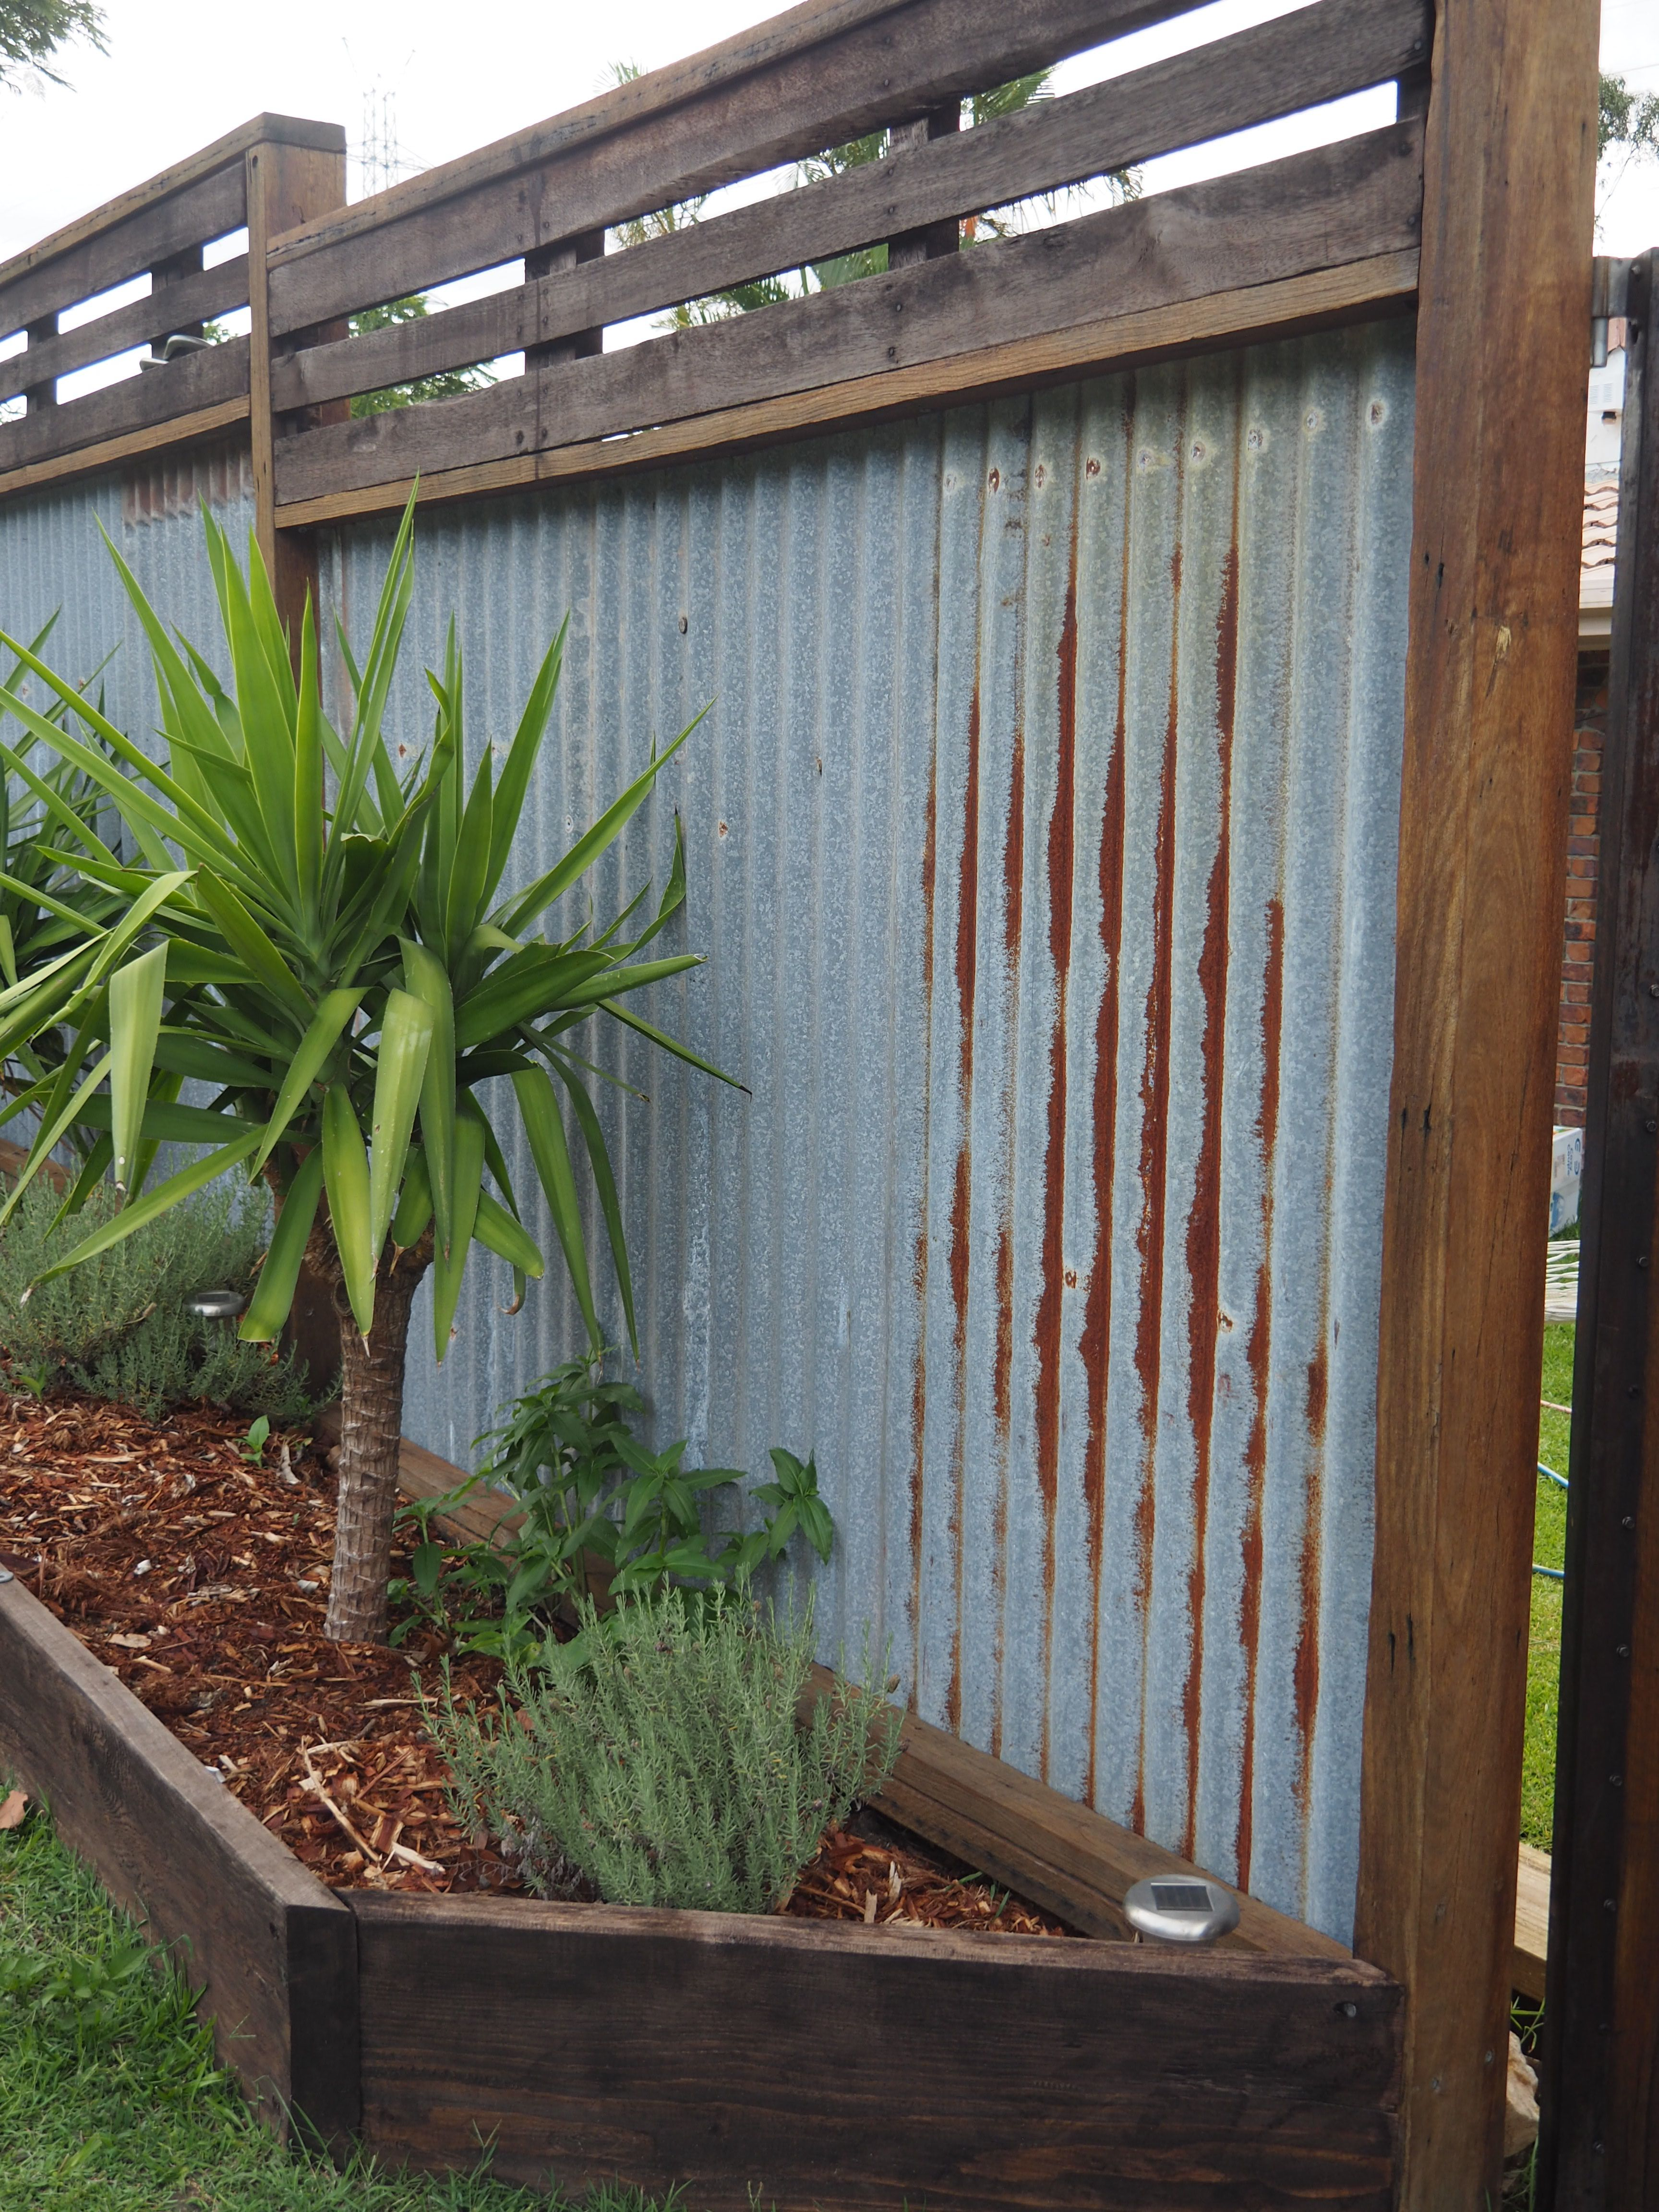 Recycled Hardwood Timber Fence I Dreamed Of This For A